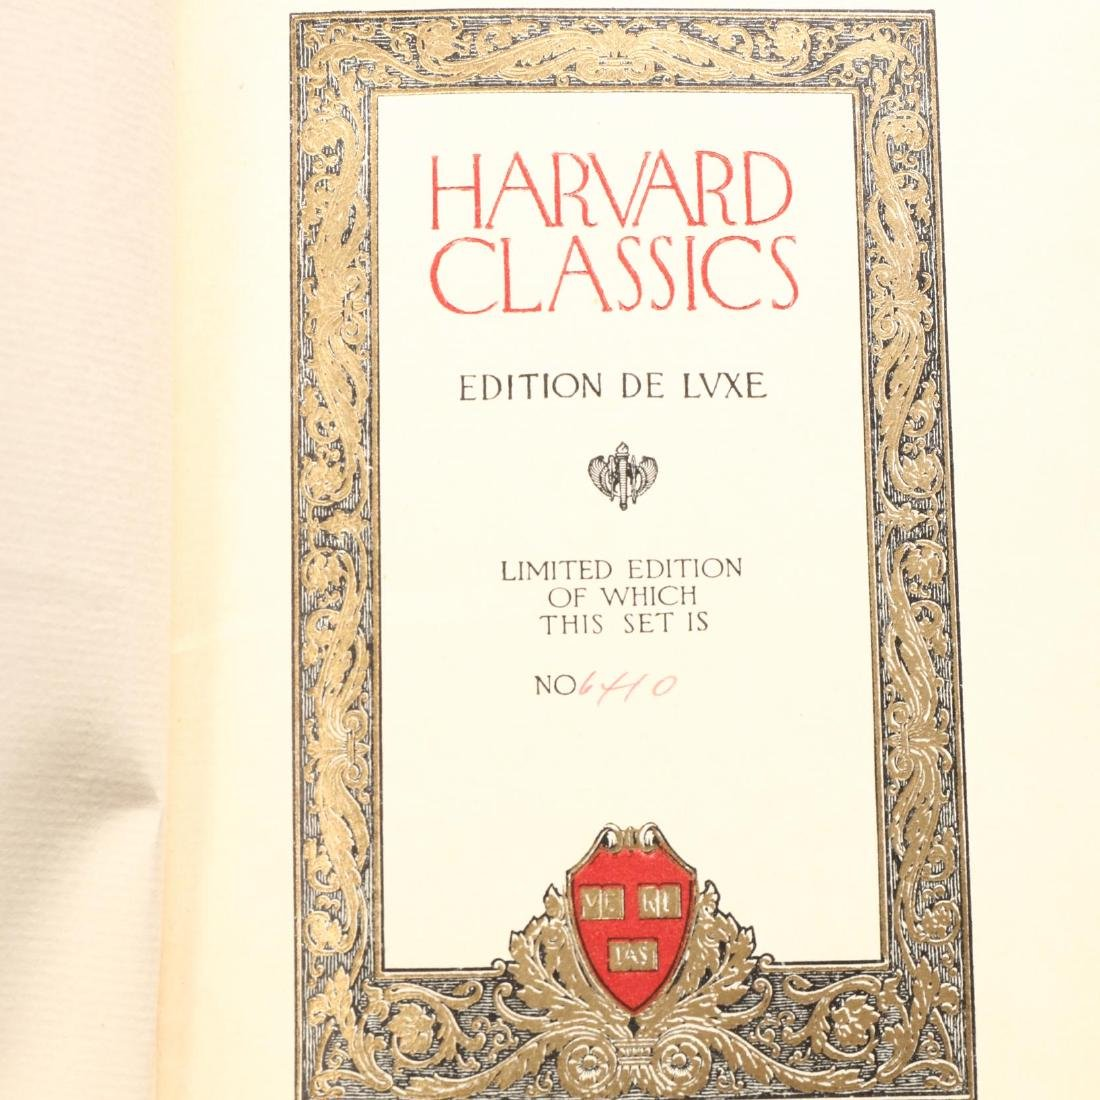 50 Volumes of  The Harvard Classics  and One Volume of - 2